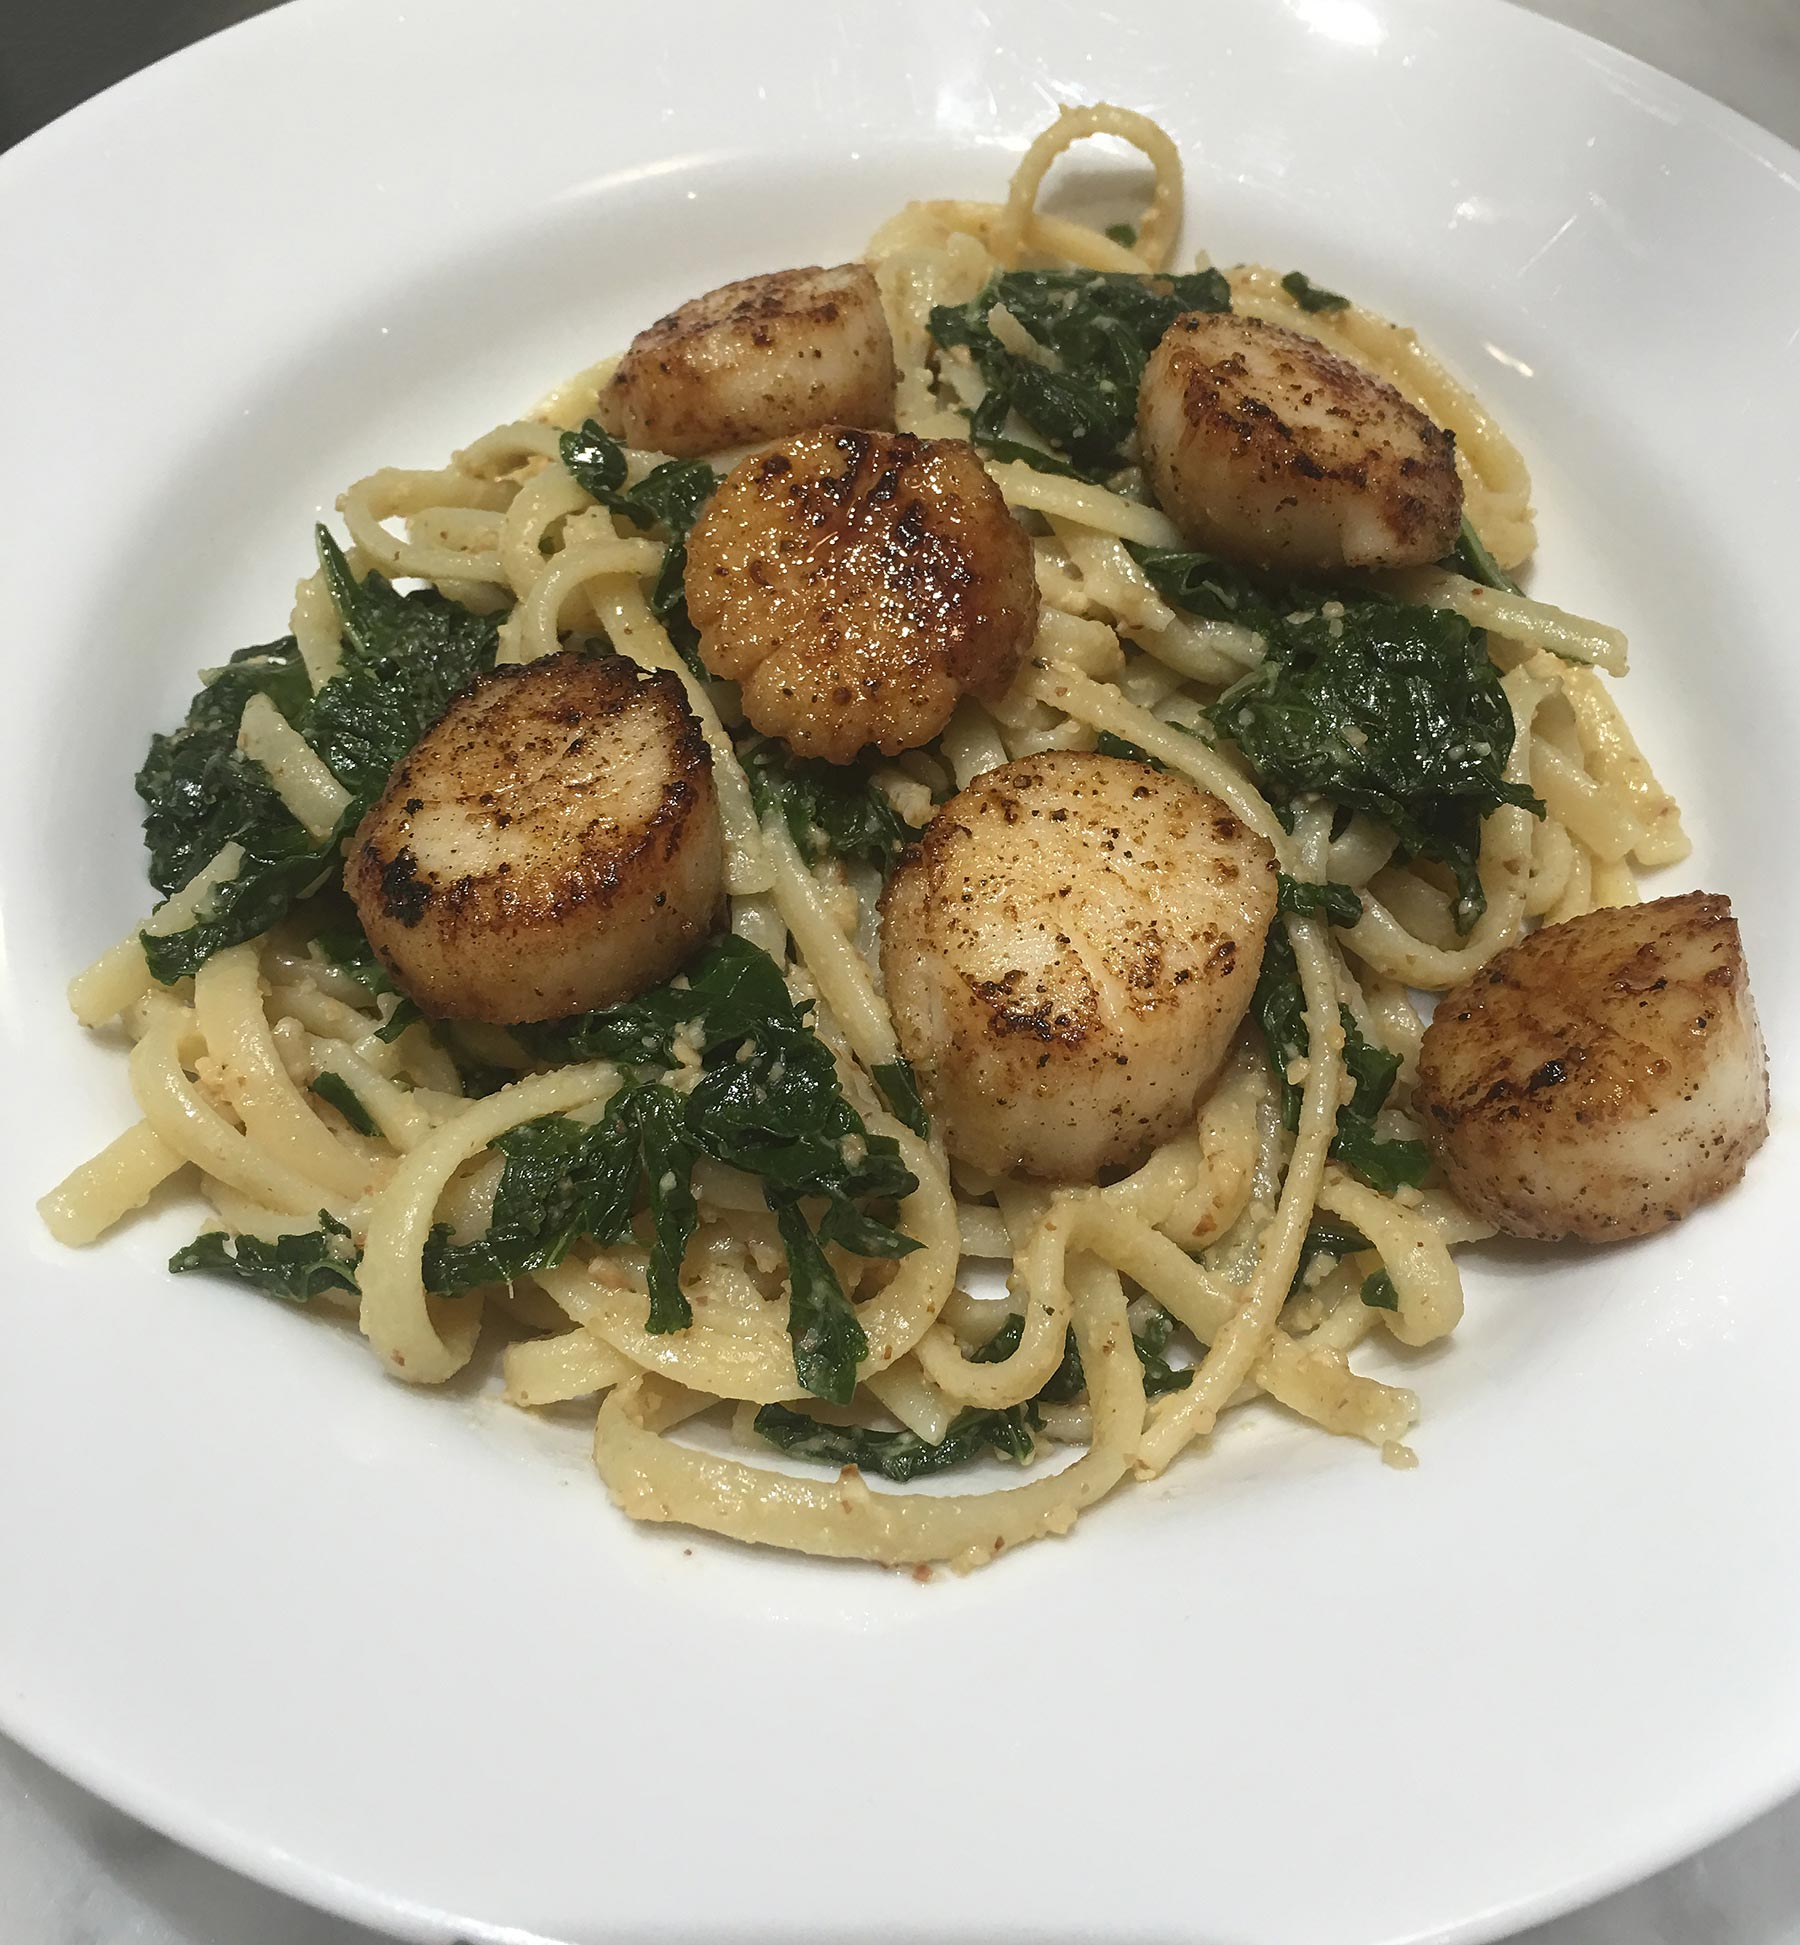 Freshly_Grilled-Sea-Scallops-on-Pasta-with-Pesto